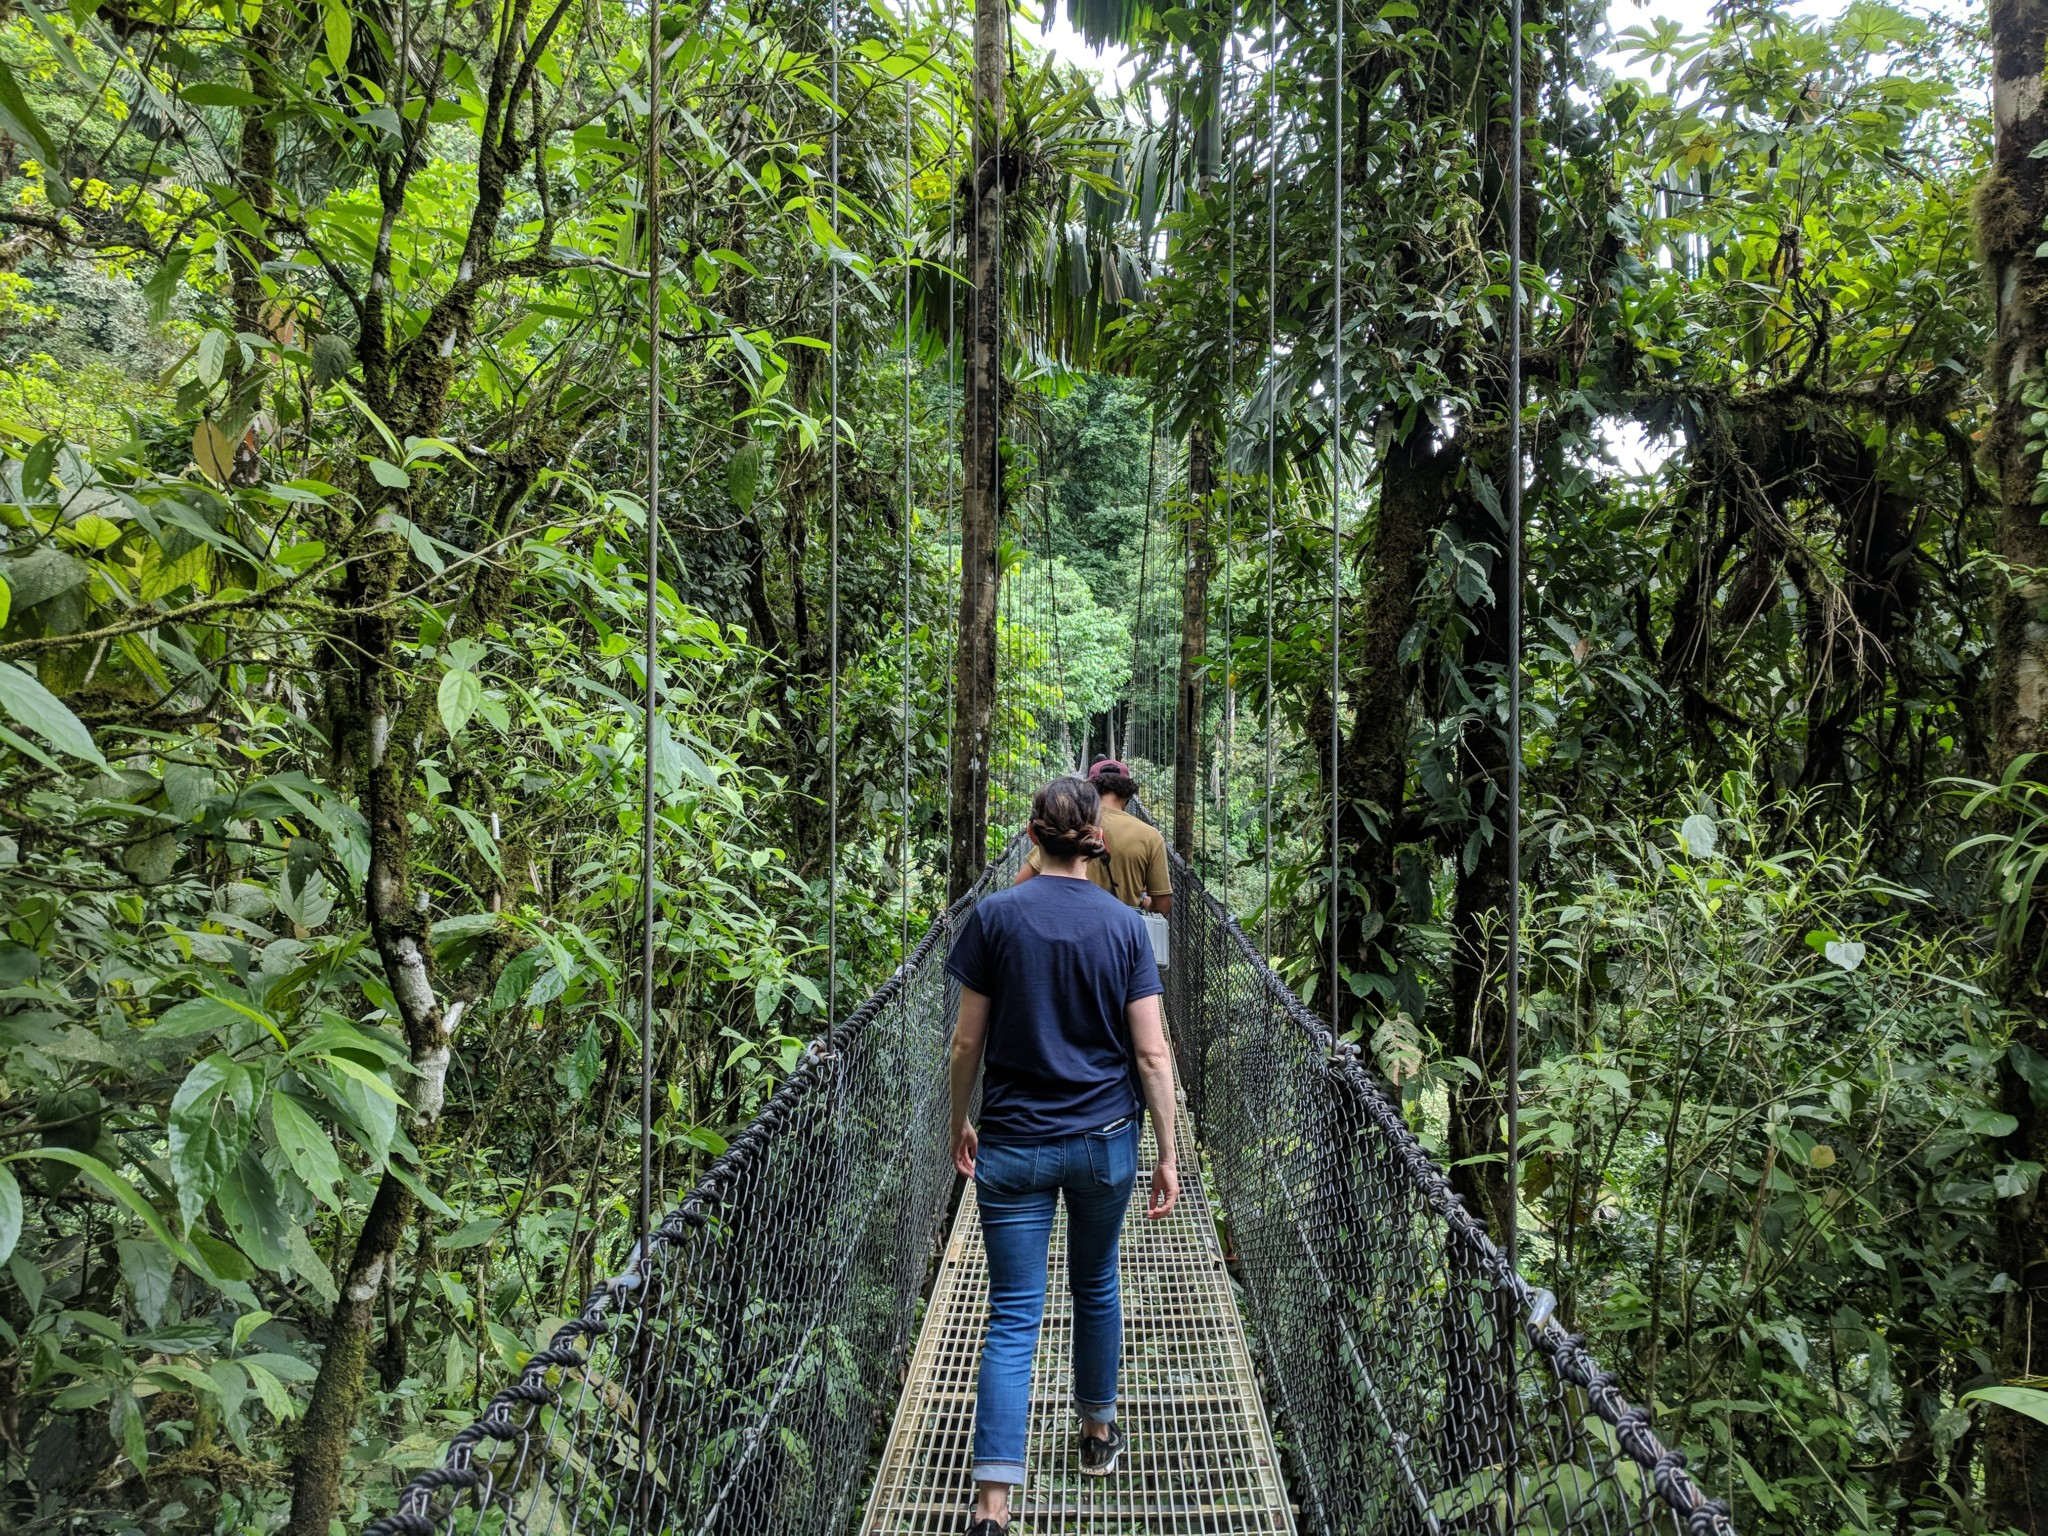 Hanging Bridge Treks Are Relatively Flat With A Few Moderate Inclines But Should Be Easily Completable For Travelers Of All Ages If The Adventure Becomes